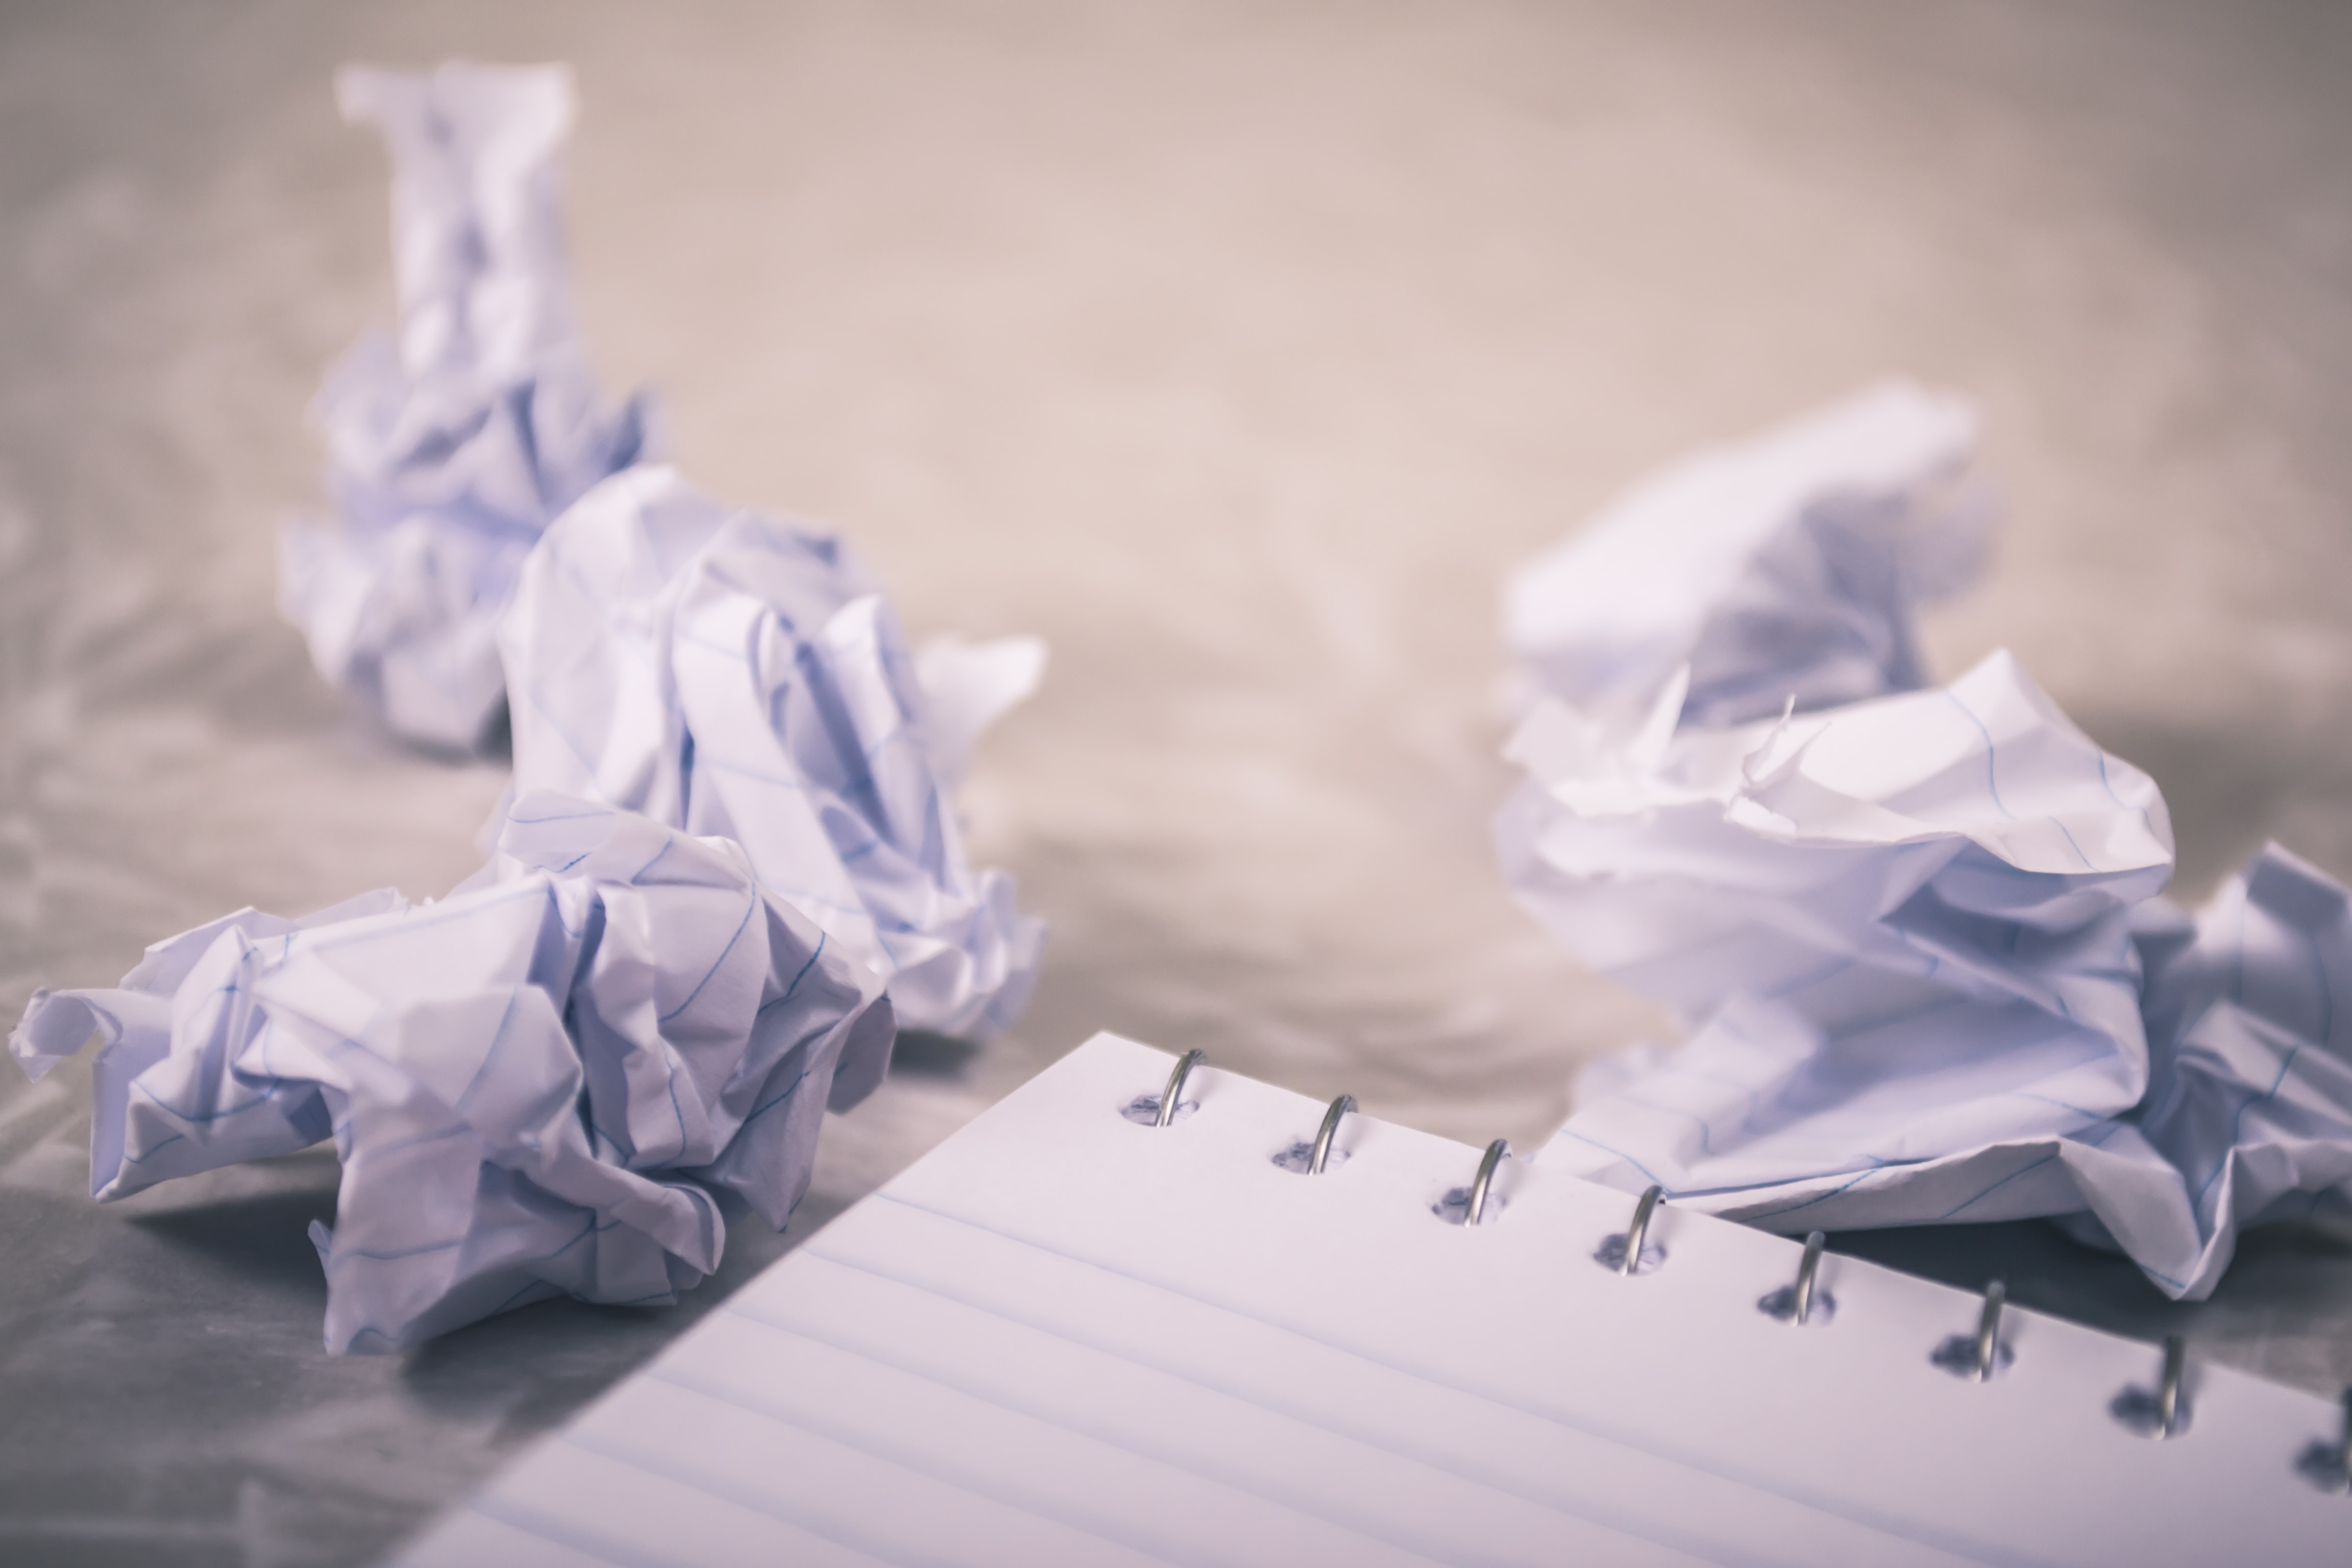 Second-guessing ideas are a sign of writer's block